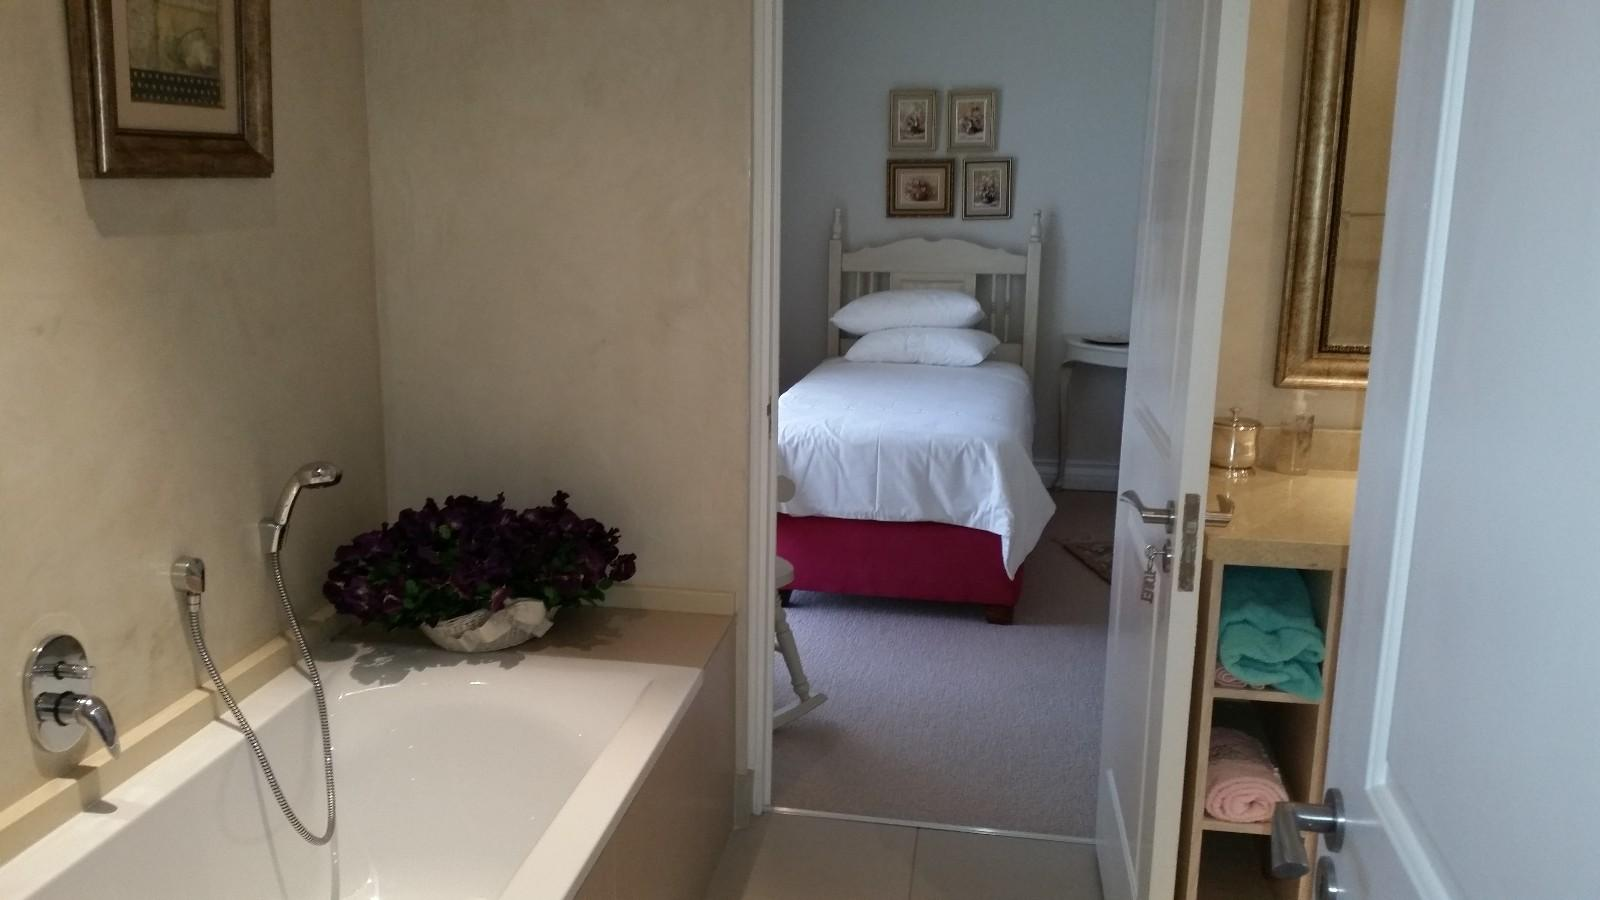 House in Magalies River Club and Golf Estate - Guest_bed_en-suite_bath_1st_level.jpg